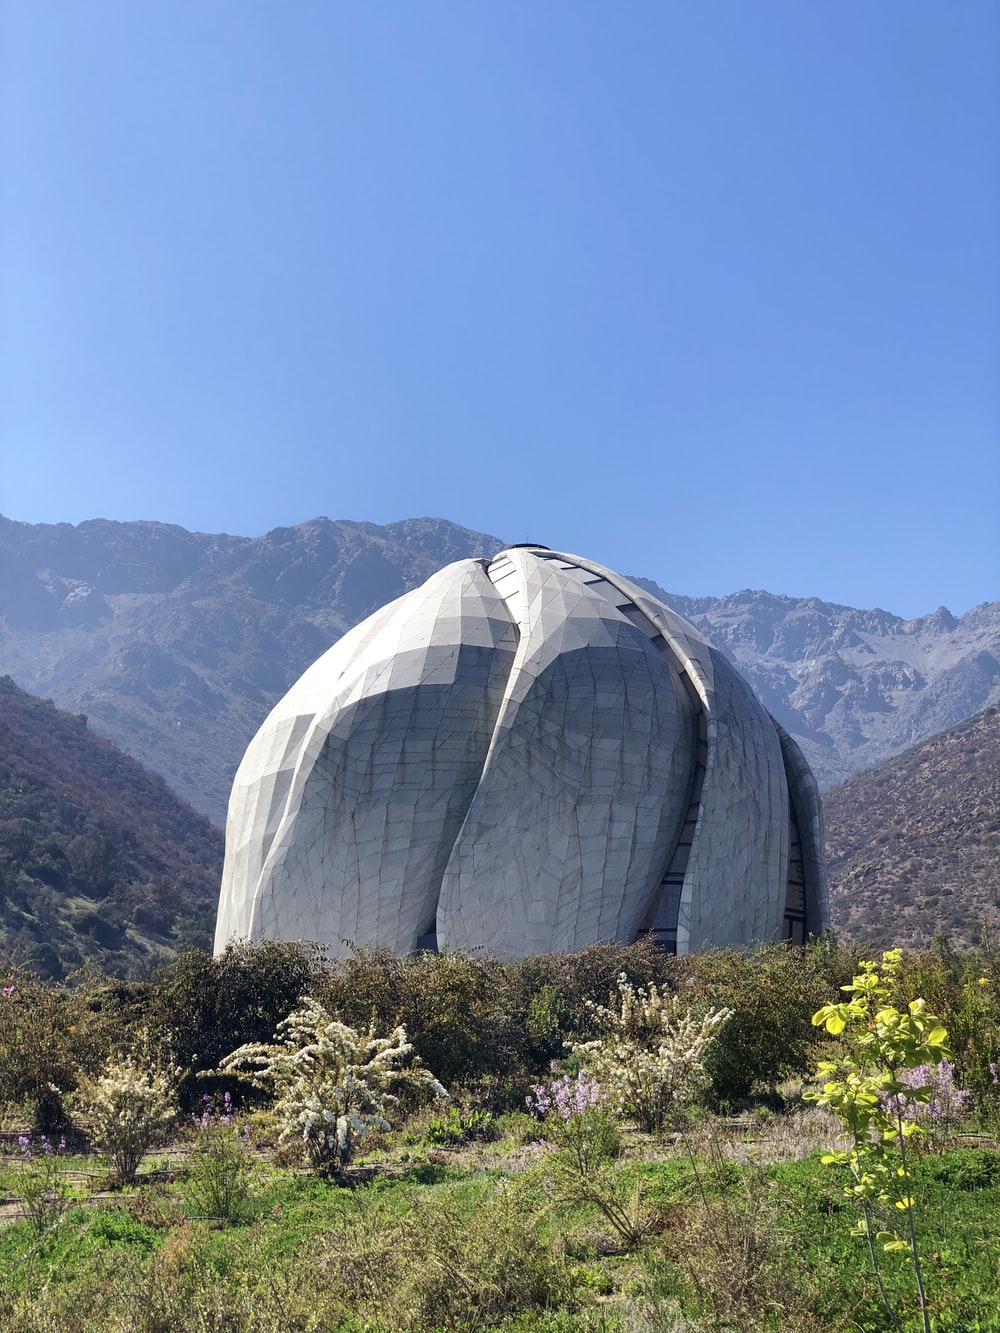 white dome structure near green field viewing mountain during daytime